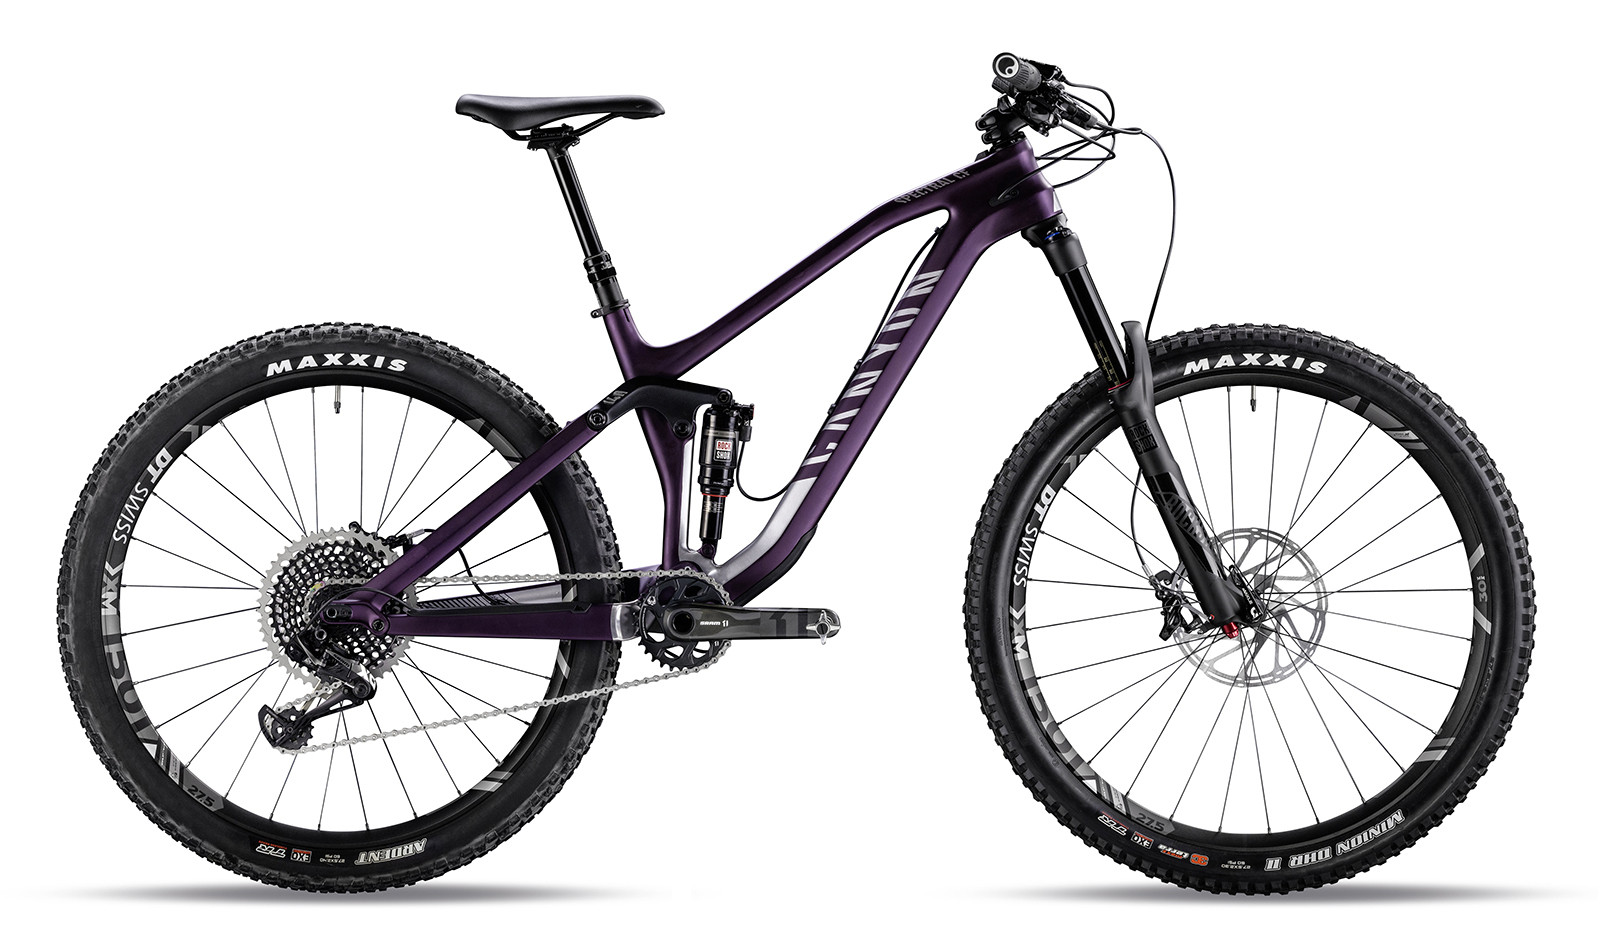 Breezer Greenway Elite Womens St 2015 further Viewtopic likewise 2016 Scott Bikes besides Coyote Route likewise Stevens Whaka Max 140 29er 2015. on 2014 scott mtb range